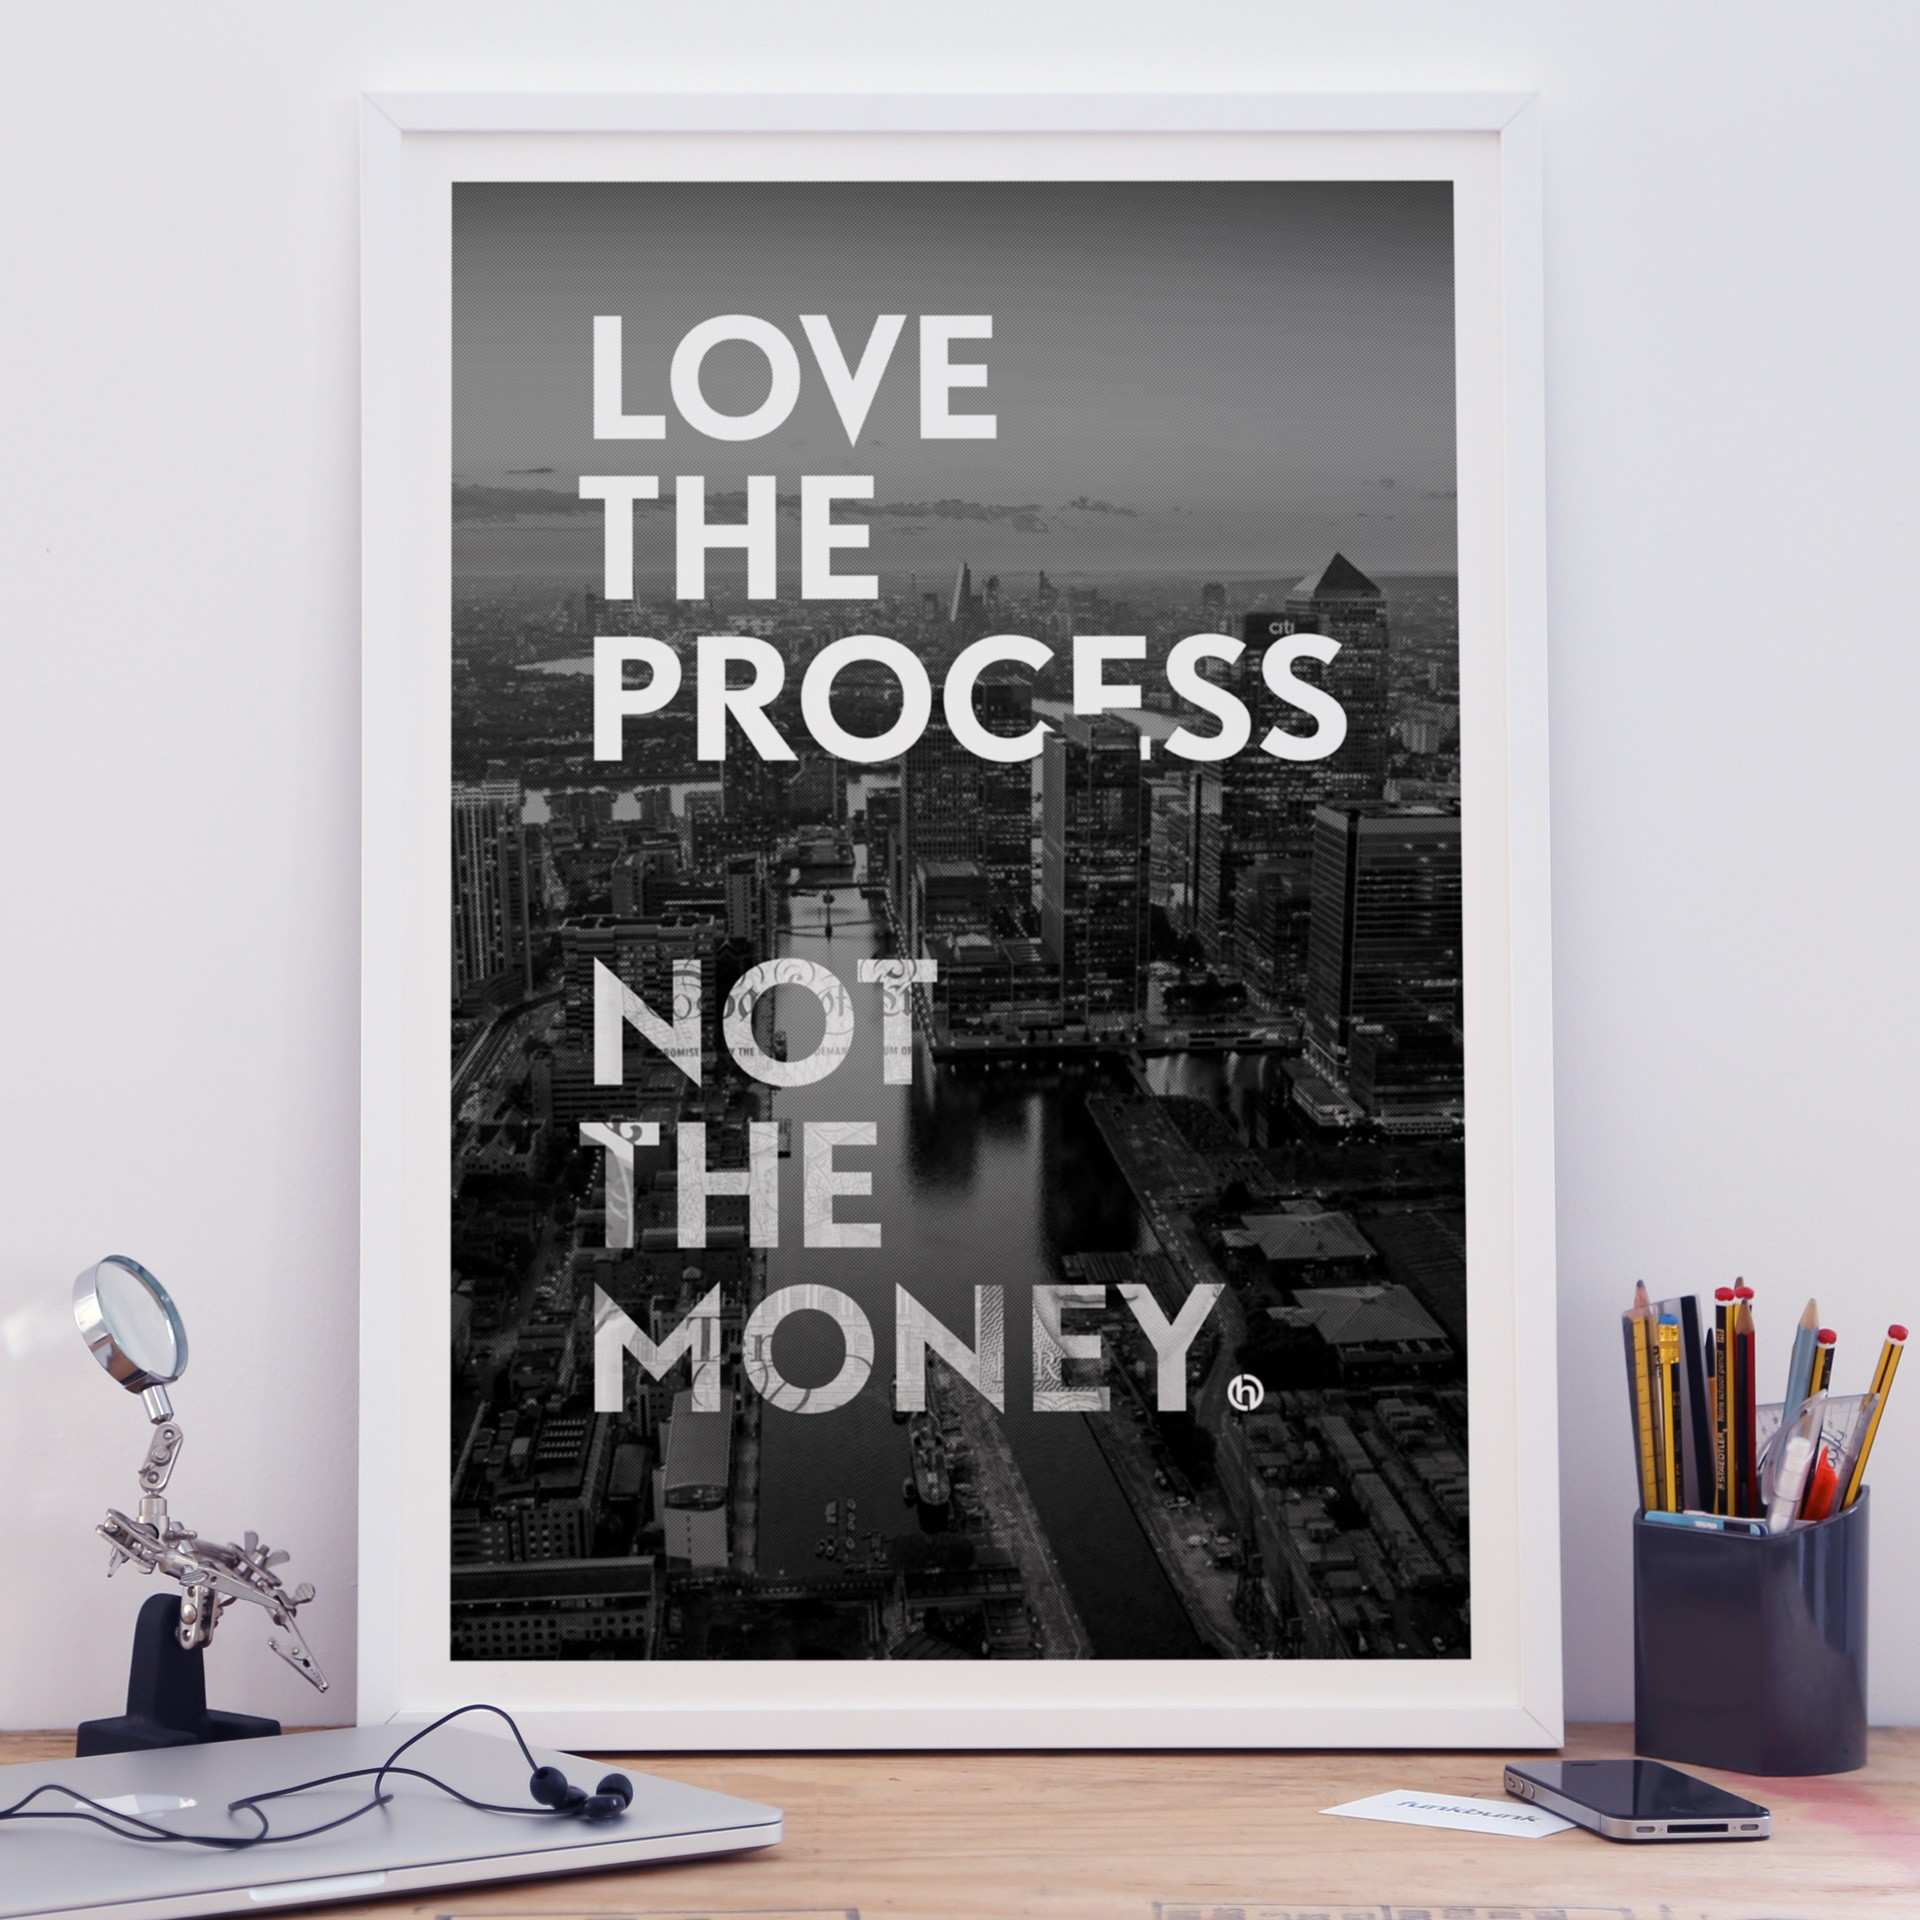 Art for your home office framed prints & posters